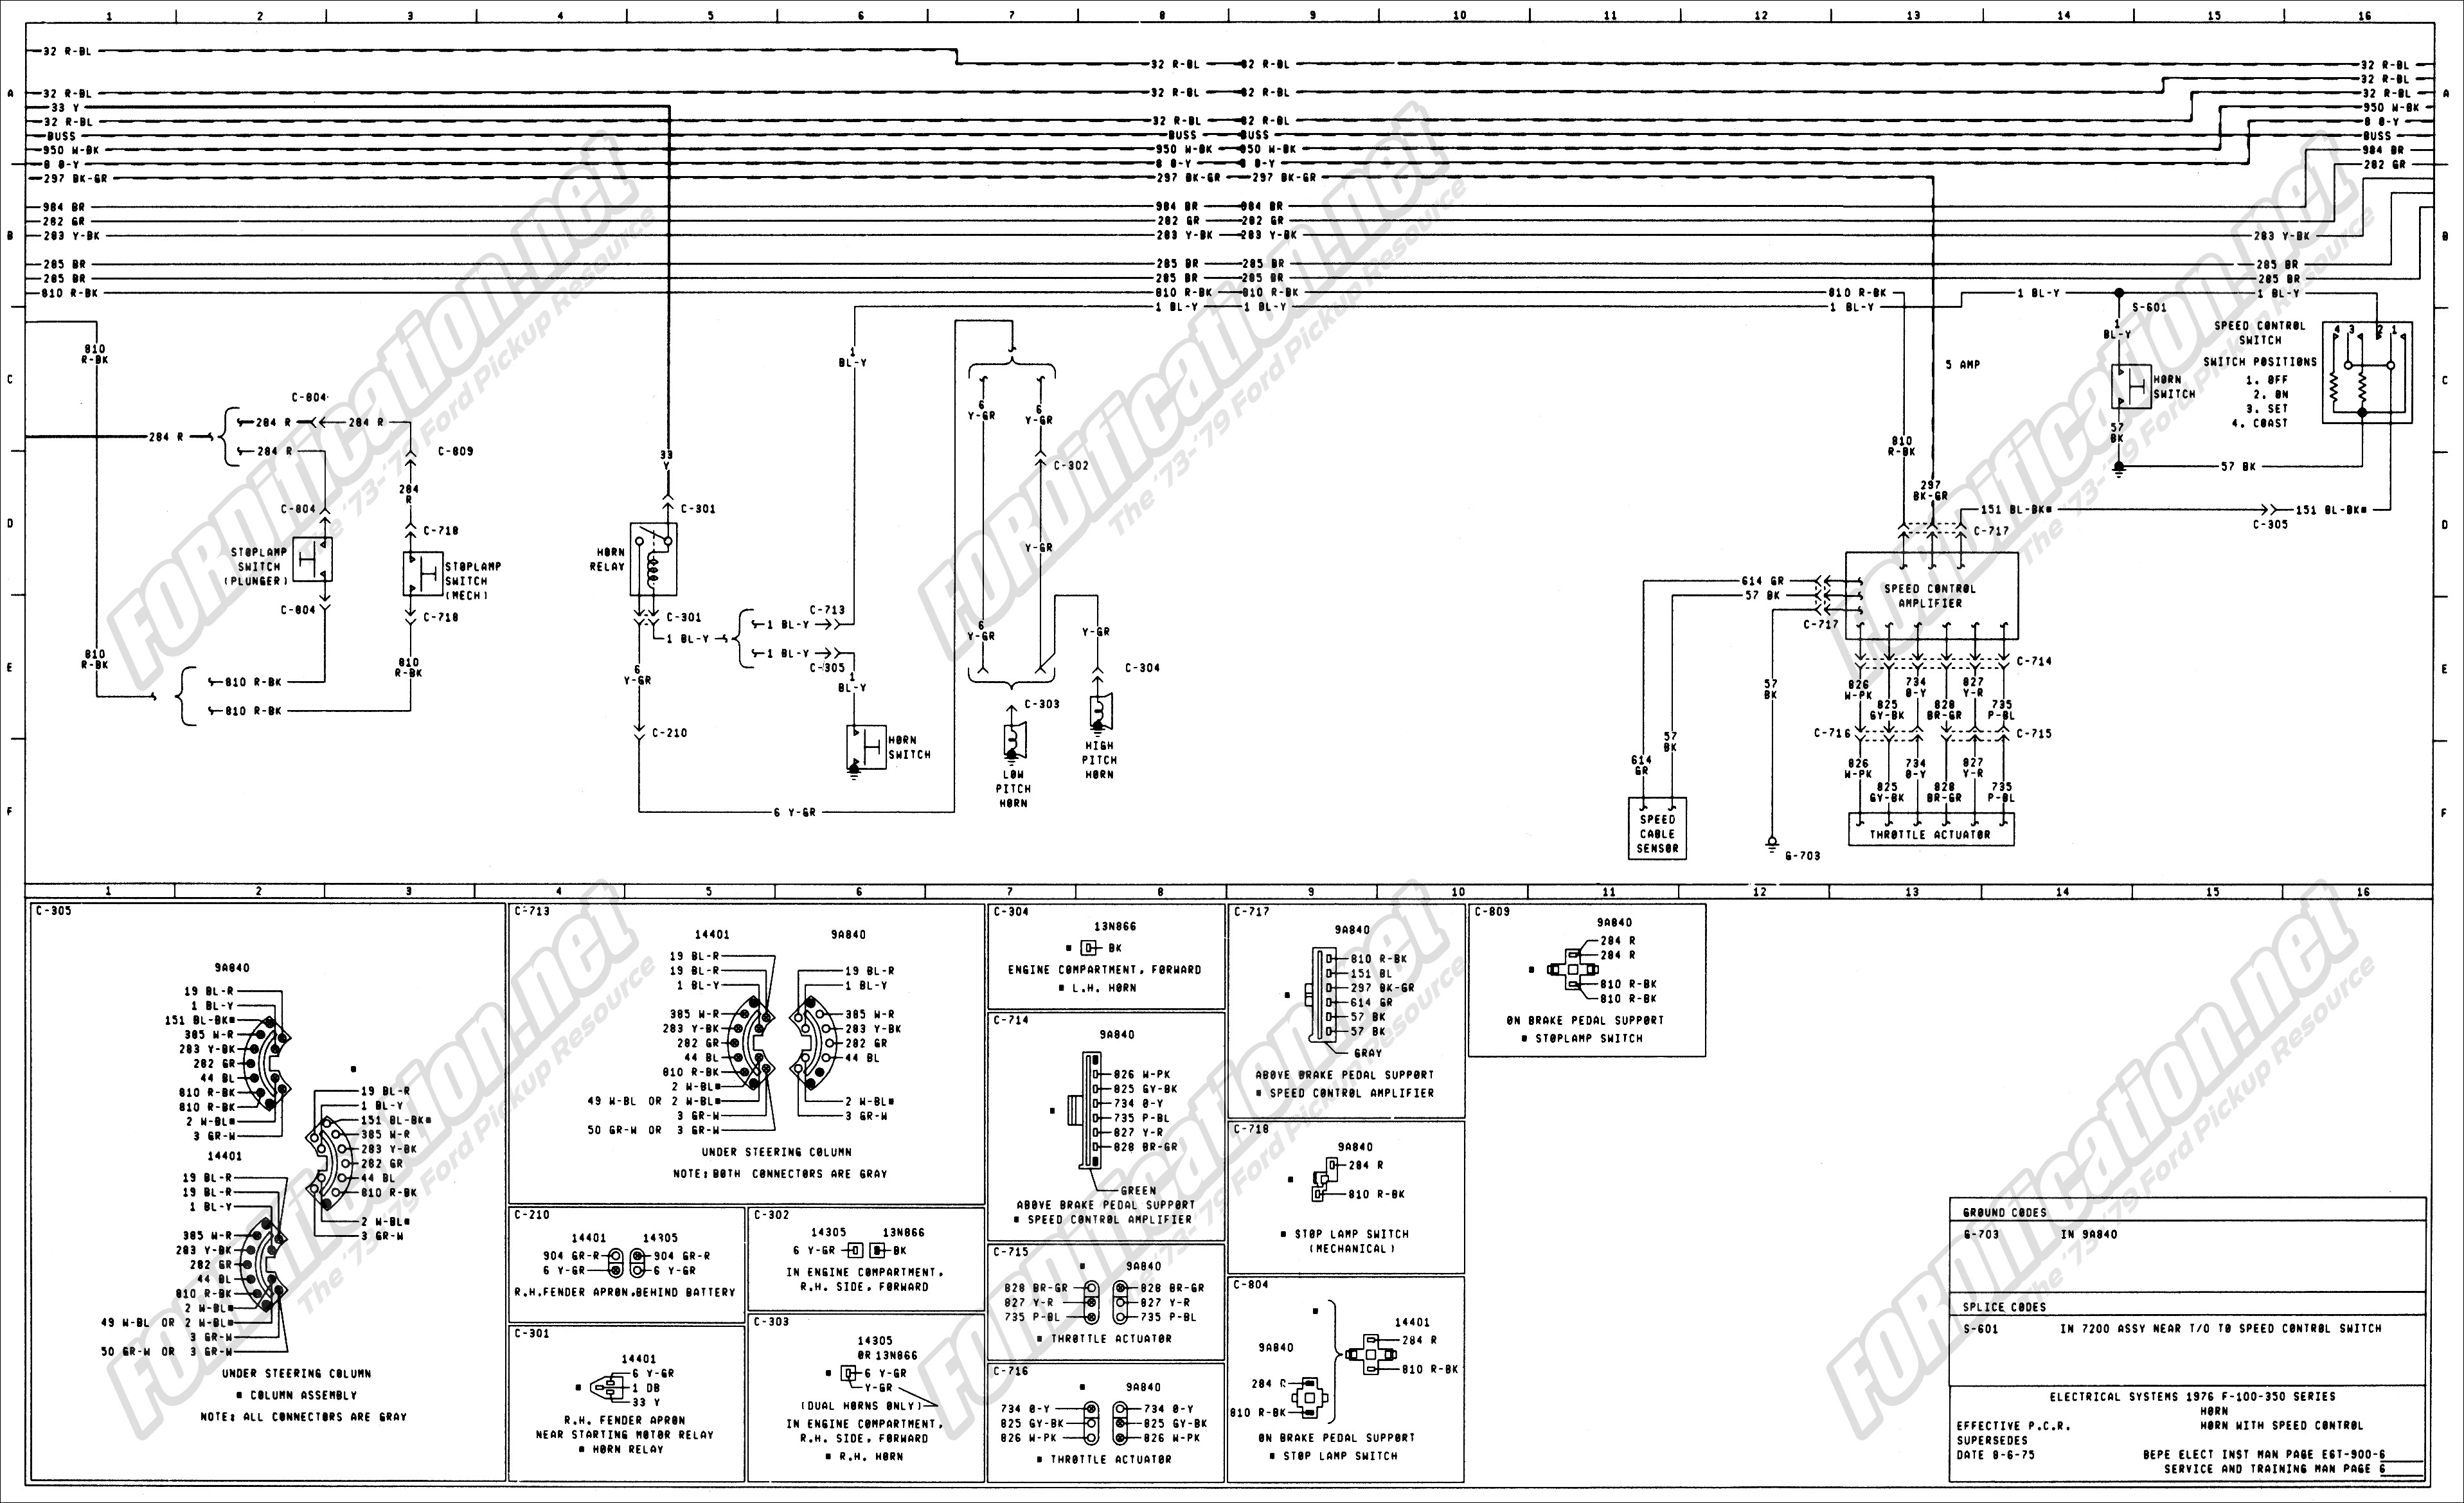 aftermarket turn signal wiring diagram wiring library wiring 76master 6of9 1973 1979 ford truck wiring diagrams amp schematics fordification from aftermarket turn aftermarket turn signal switch